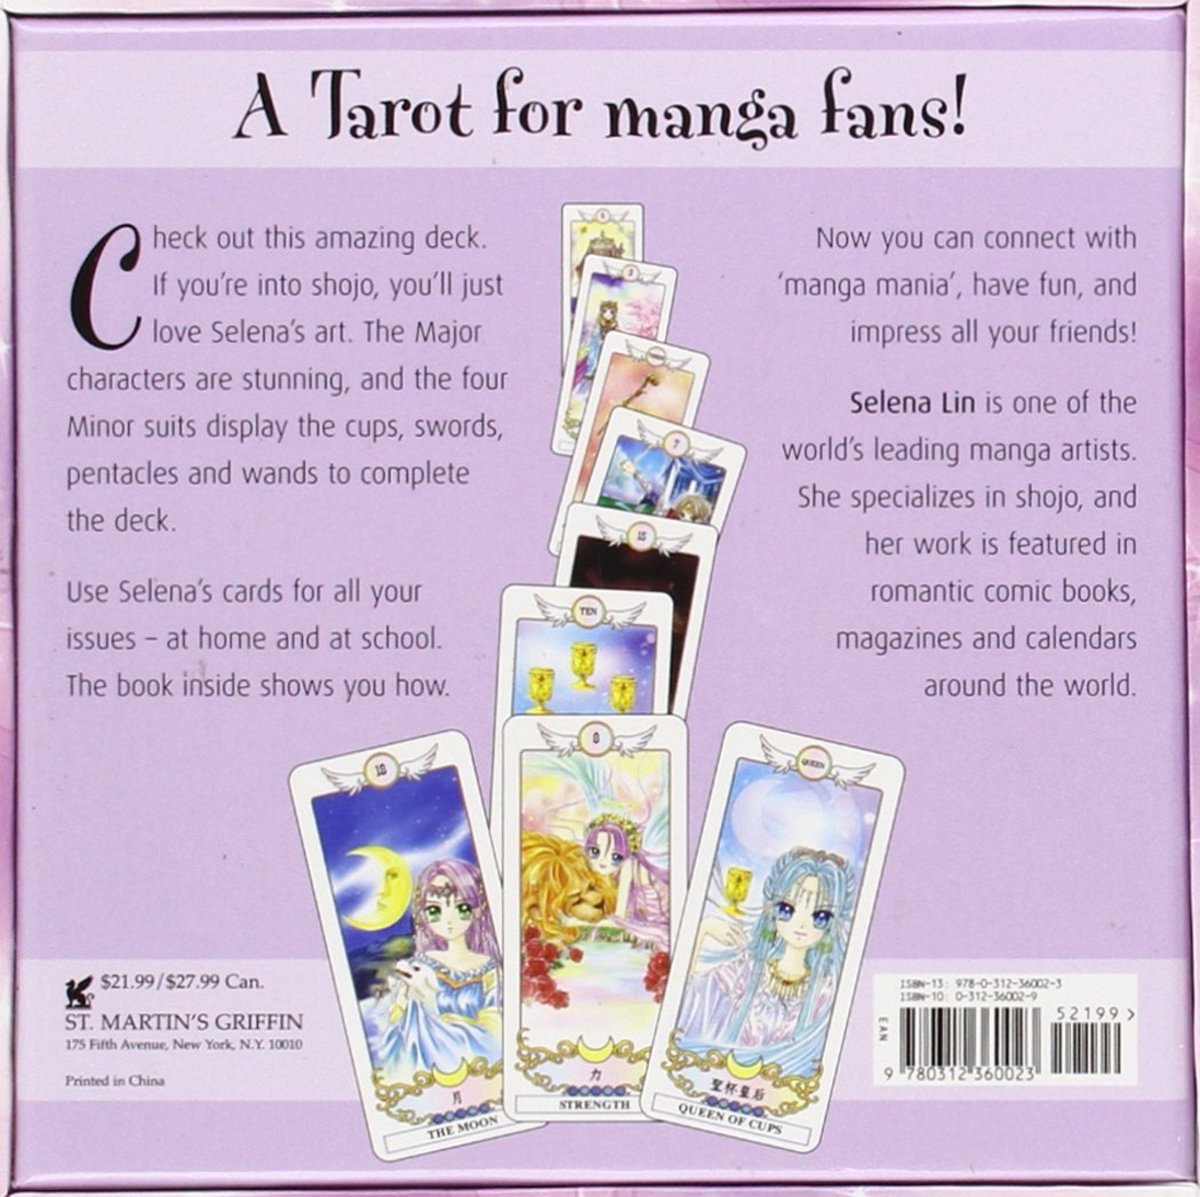 The Manga Tarot Cards deck by Selena Lin is a great gift choice for manga fans who also love the tarot